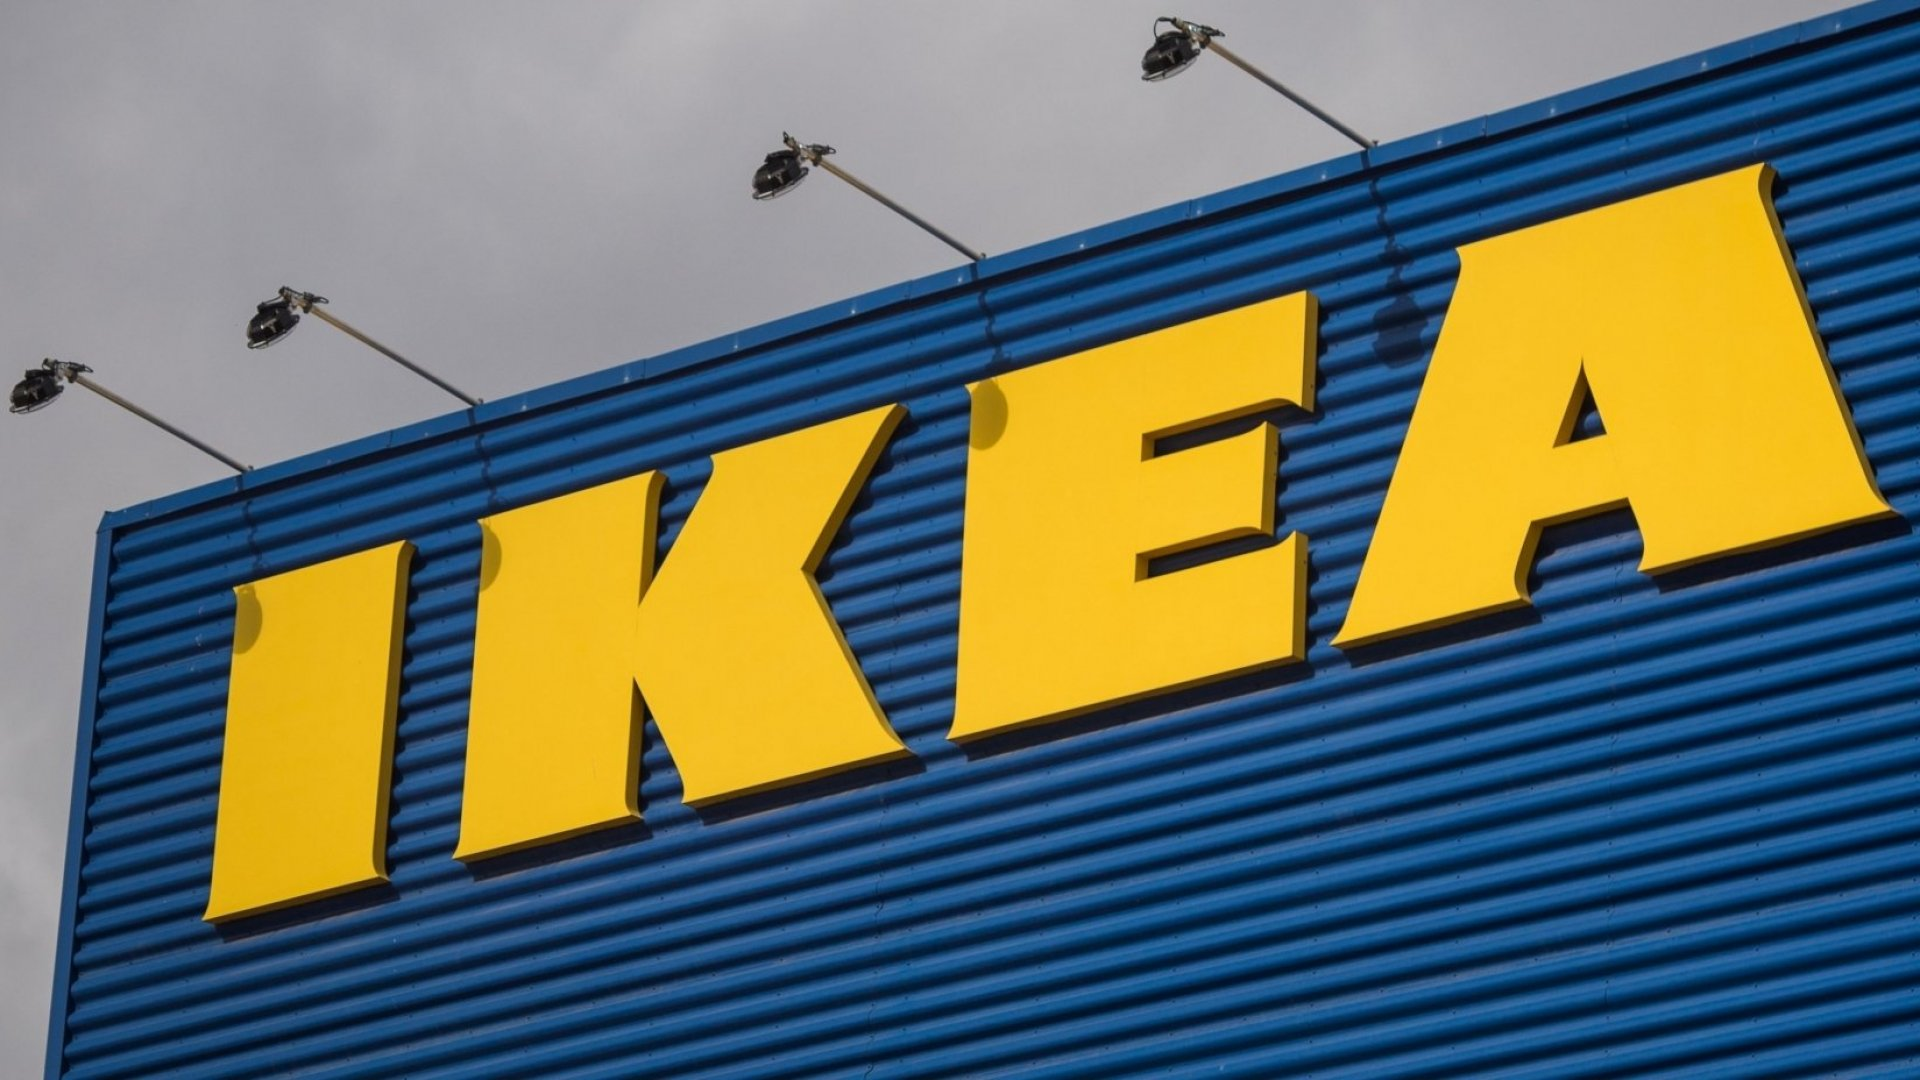 Ikea Just Announced Some Radical Changes That Will Change Everything You Think About Ikea (They Sure Hope So Anyway)